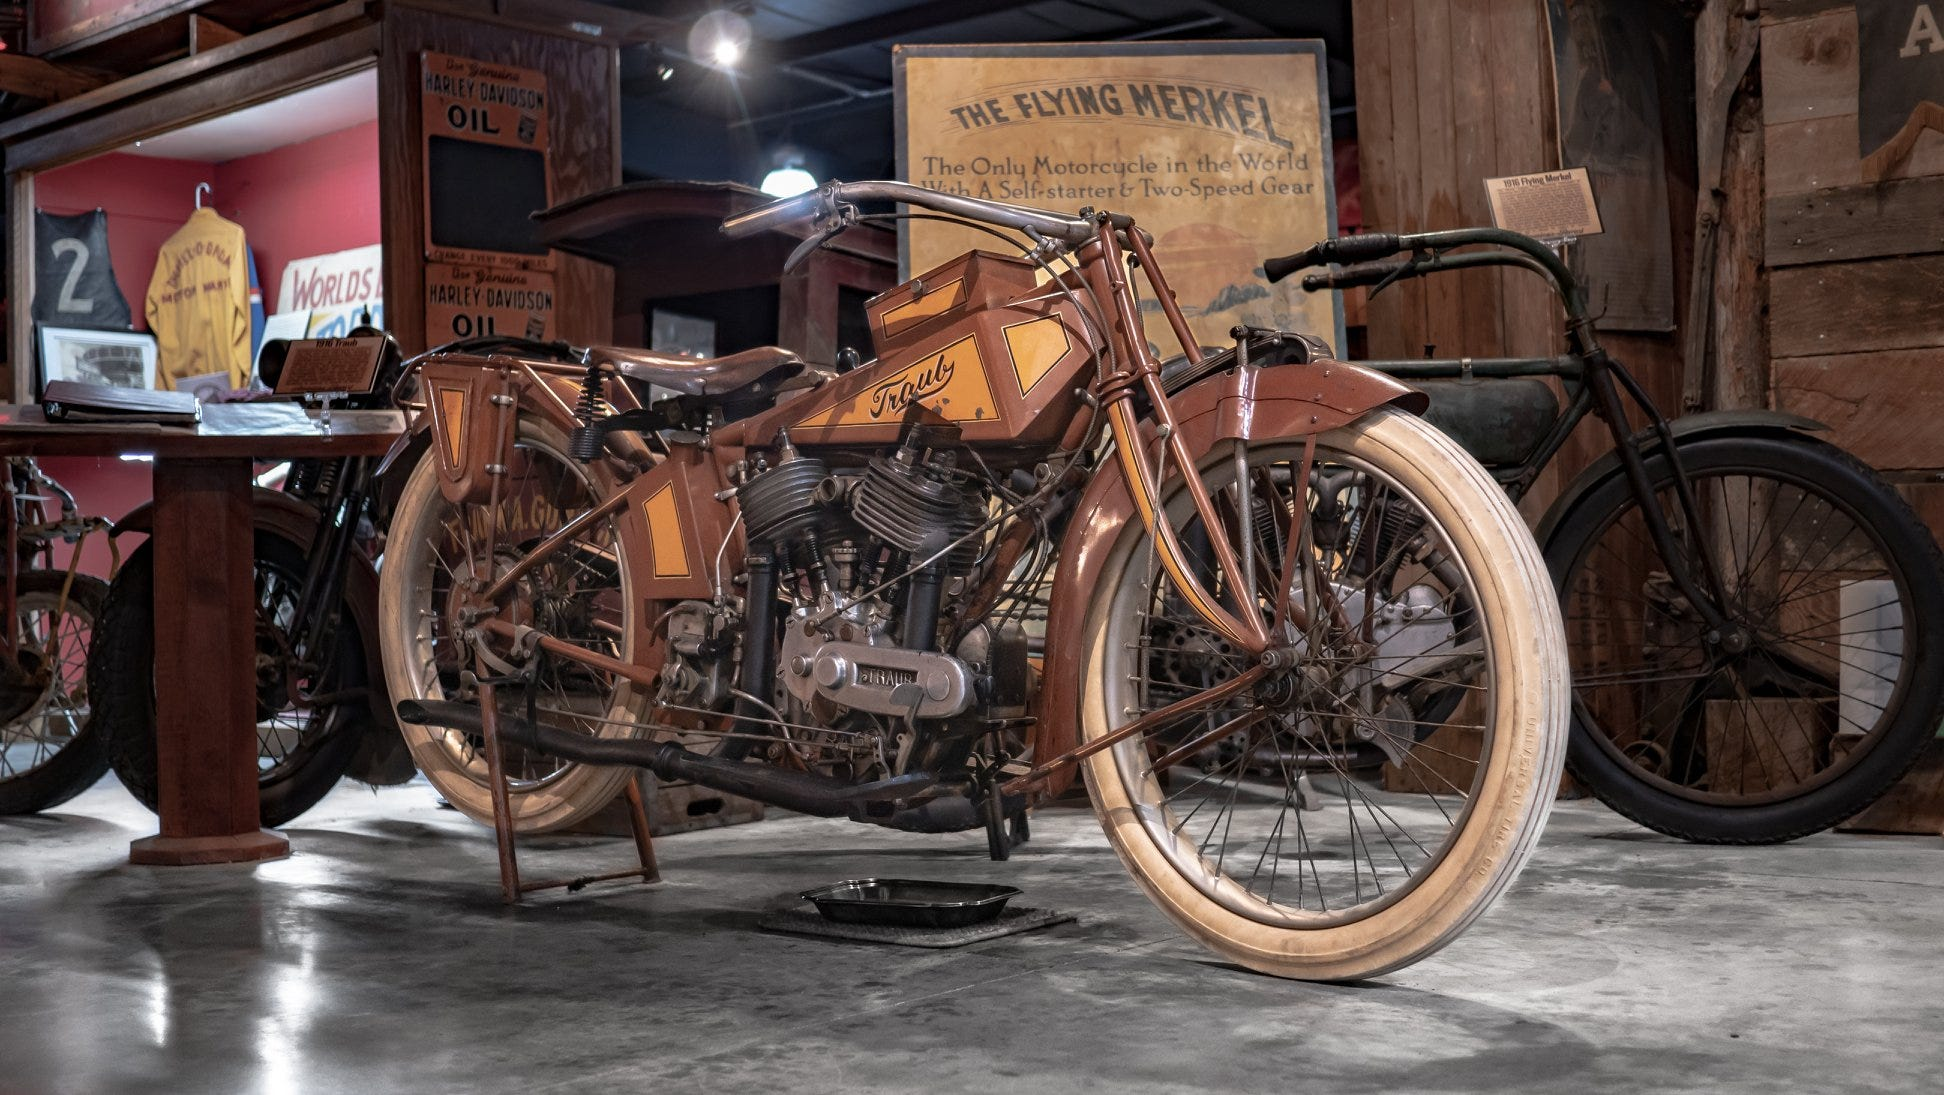 1916 Traub Motorcycle at Dale's Wheels Through Time Motorcycle Museum